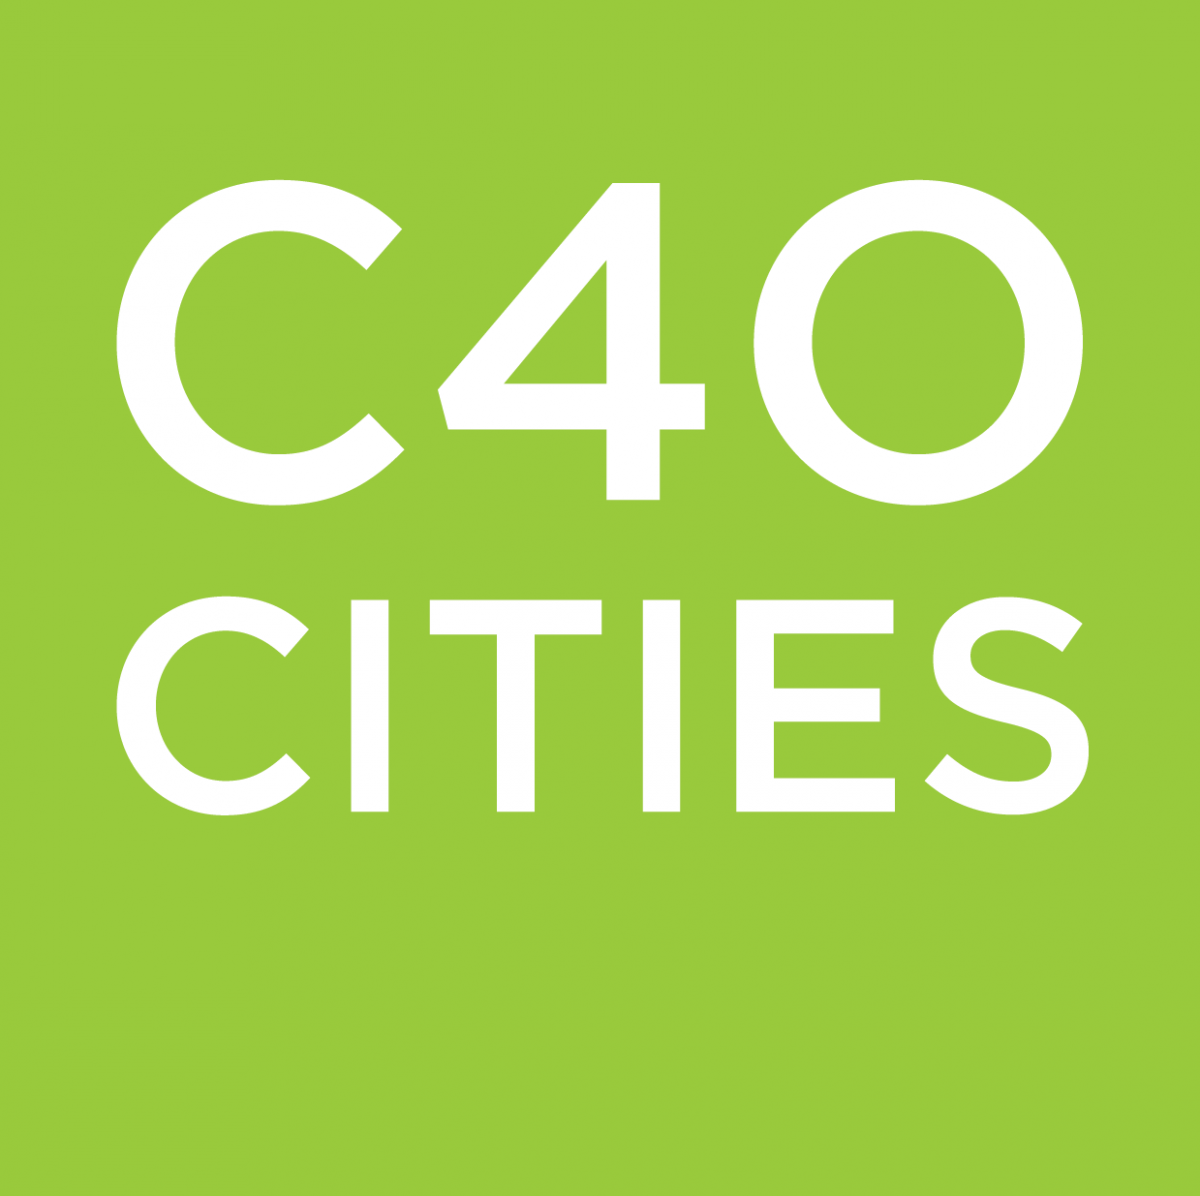 C40_Clean_Logo_CMYK_green.png